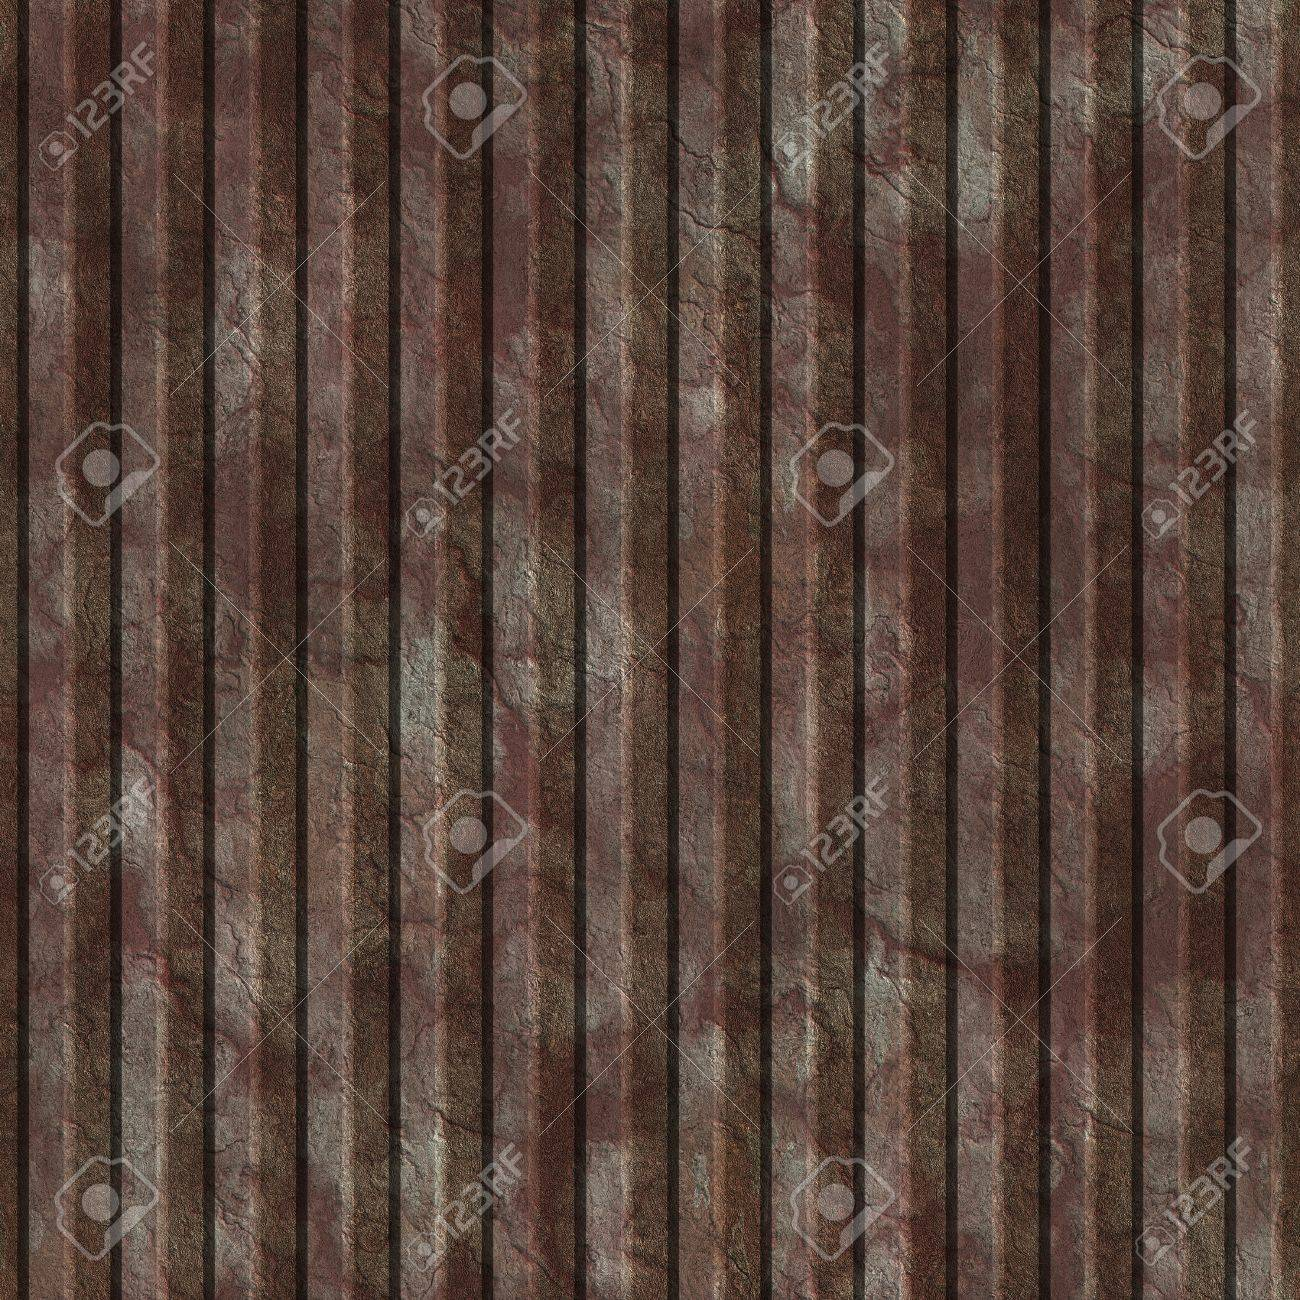 Corrugated metal Seamless texture Stock Photo   16357819. Corrugated Metal Seamless Texture Stock Photo  Picture And Royalty